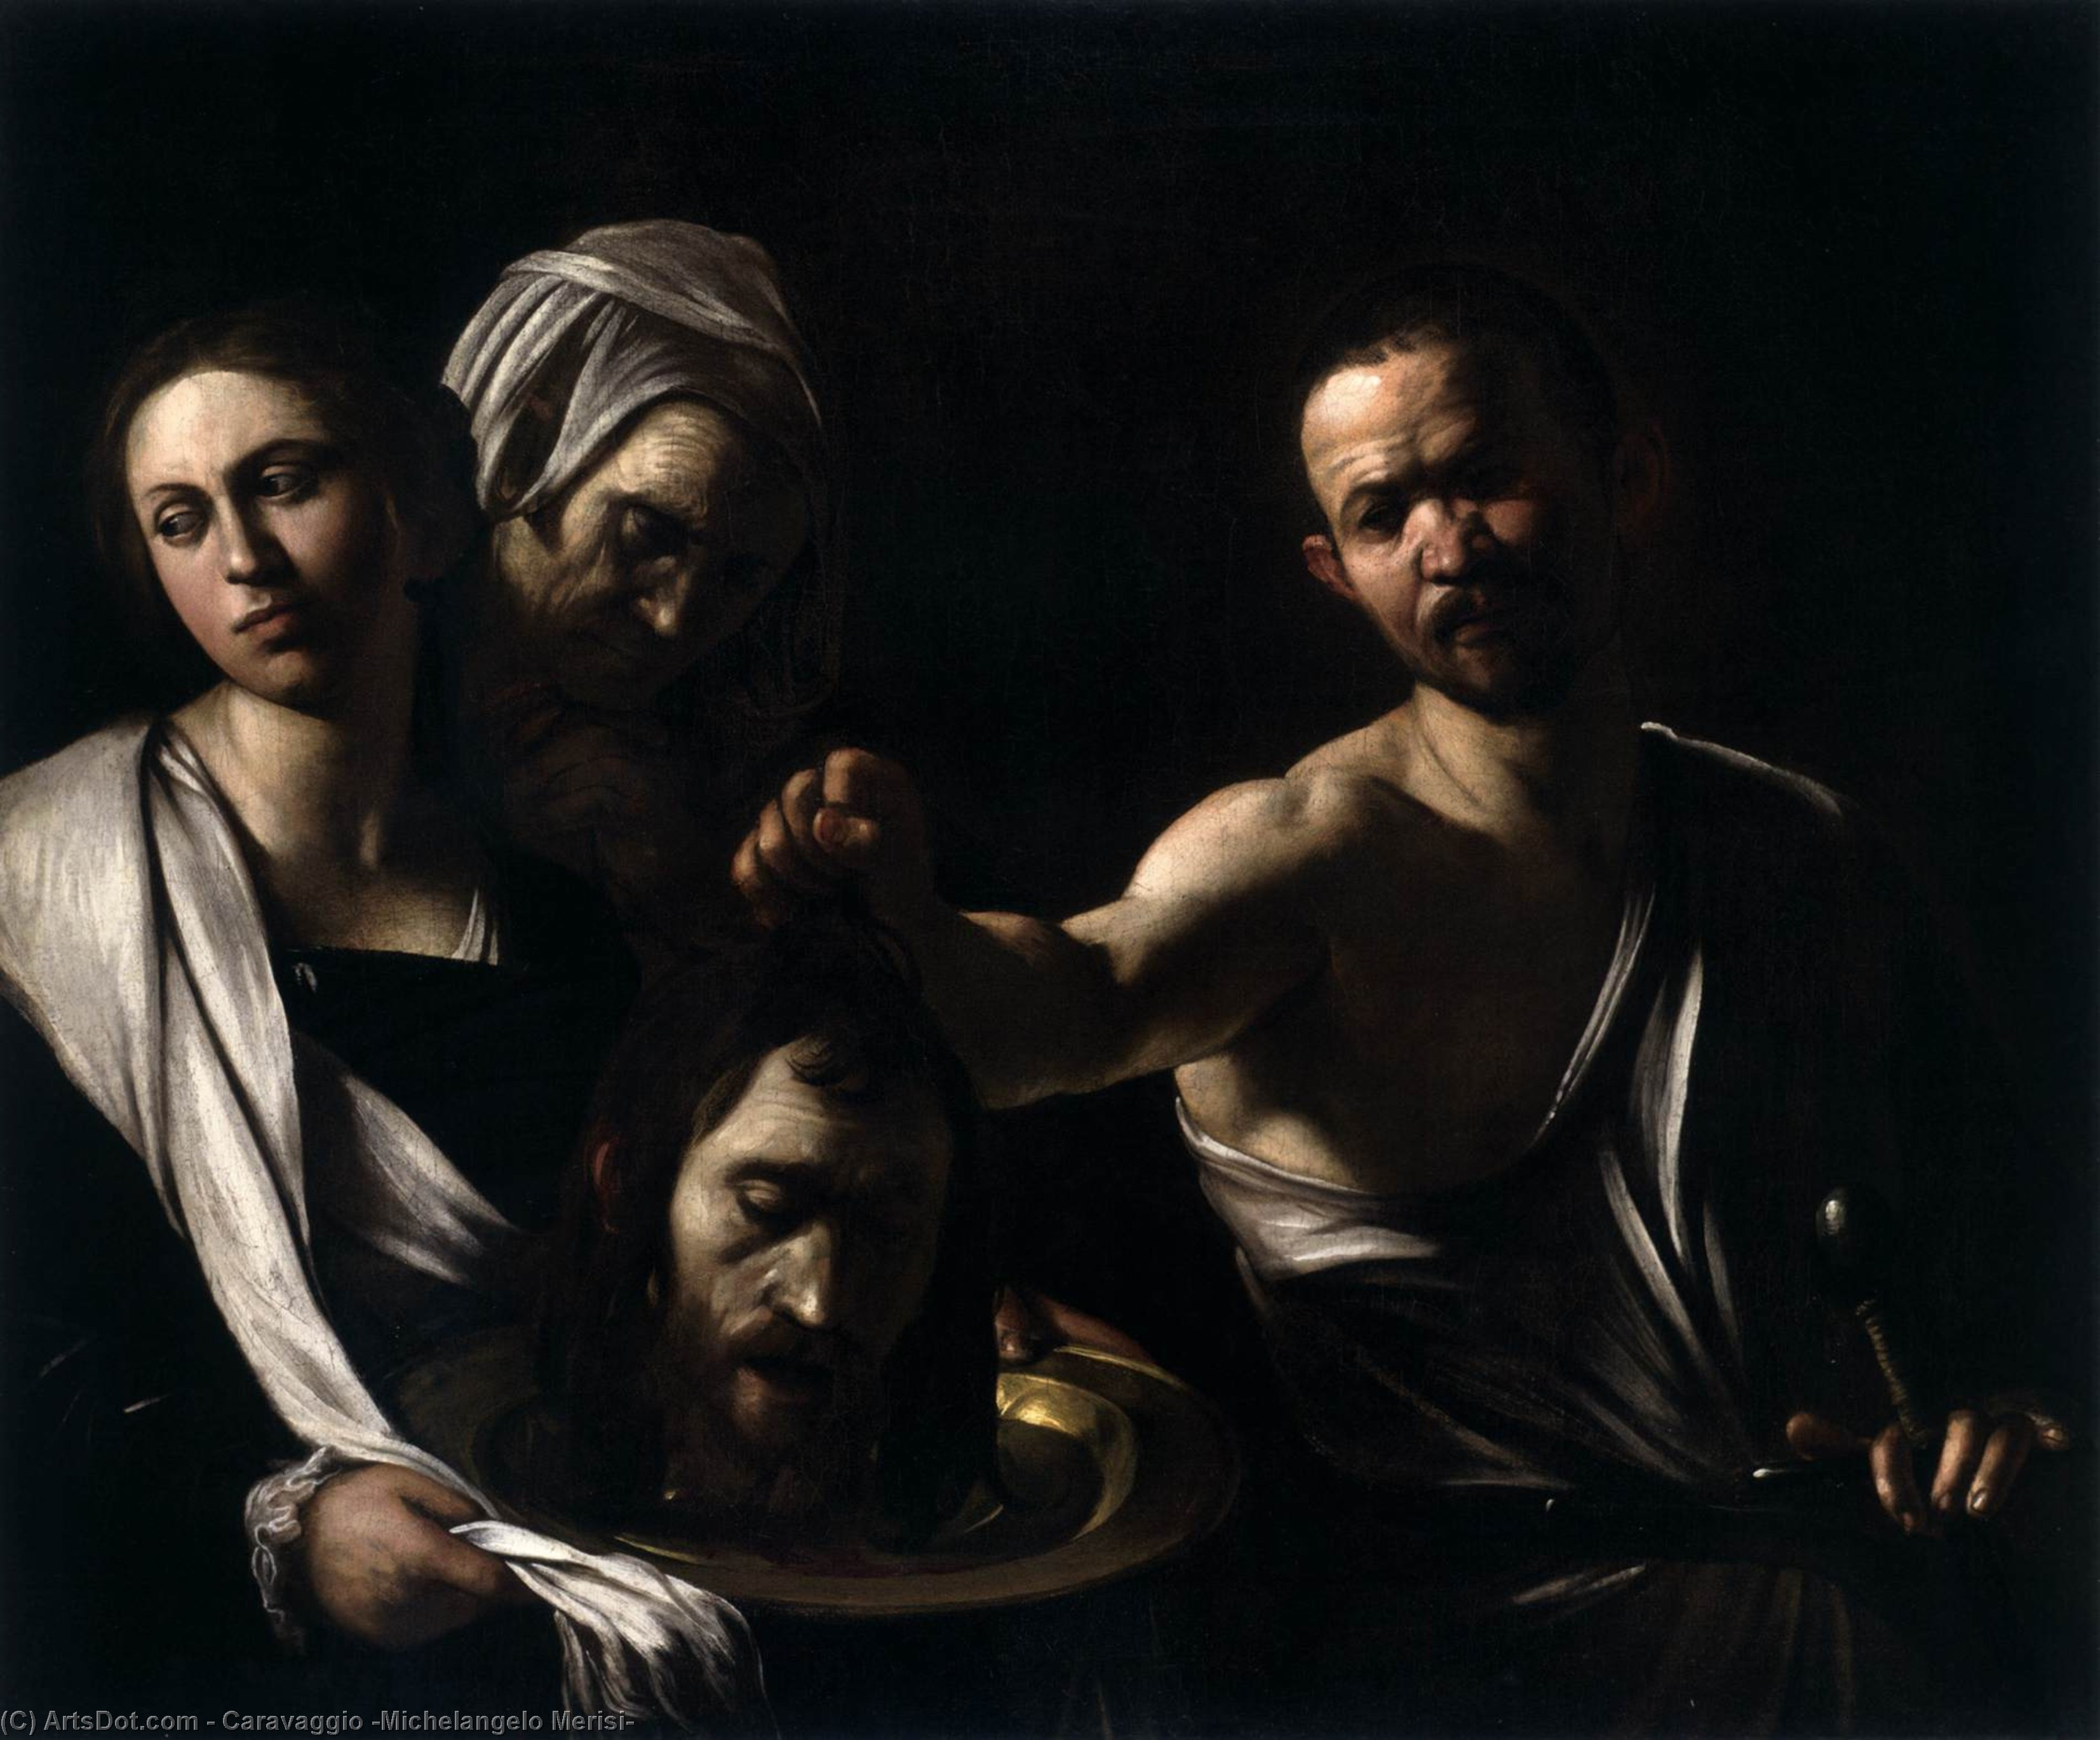 Wikioo.org - The Encyclopedia of Fine Arts - Painting, Artwork by Caravaggio (Michelangelo Merisi) - Salome with the Head of St. John the Baptist